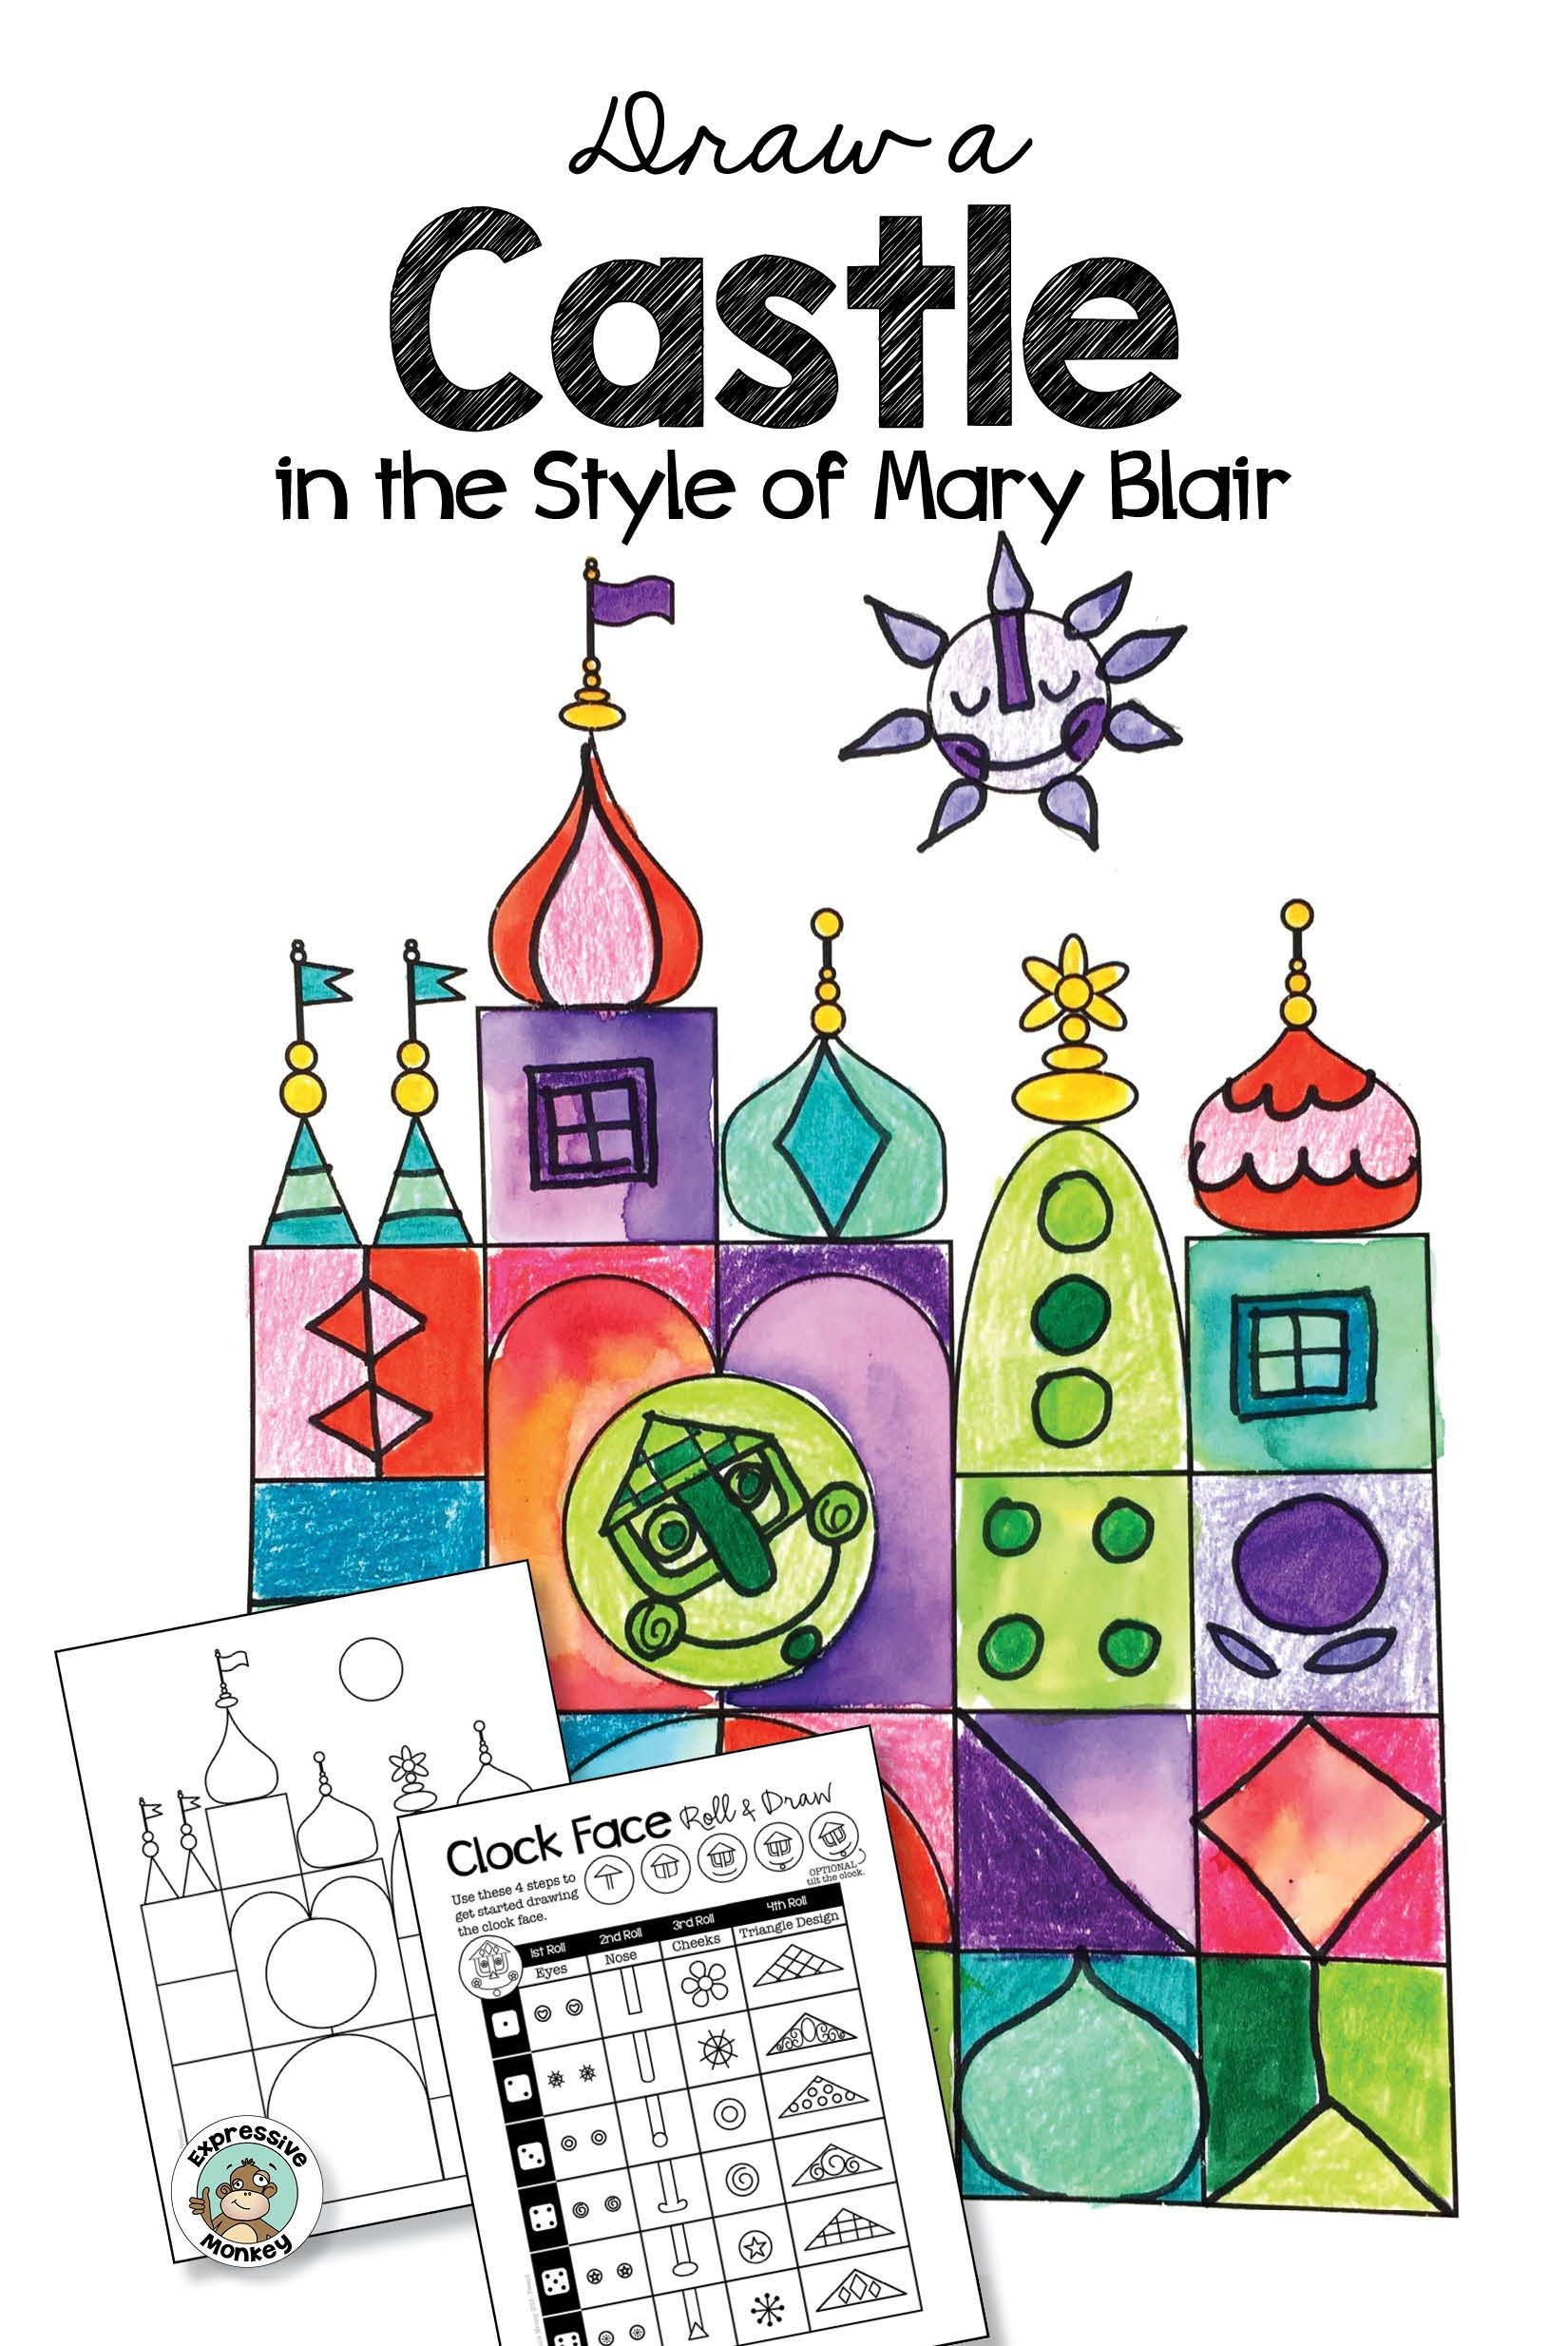 Castle Design in the Style of Mary Blair